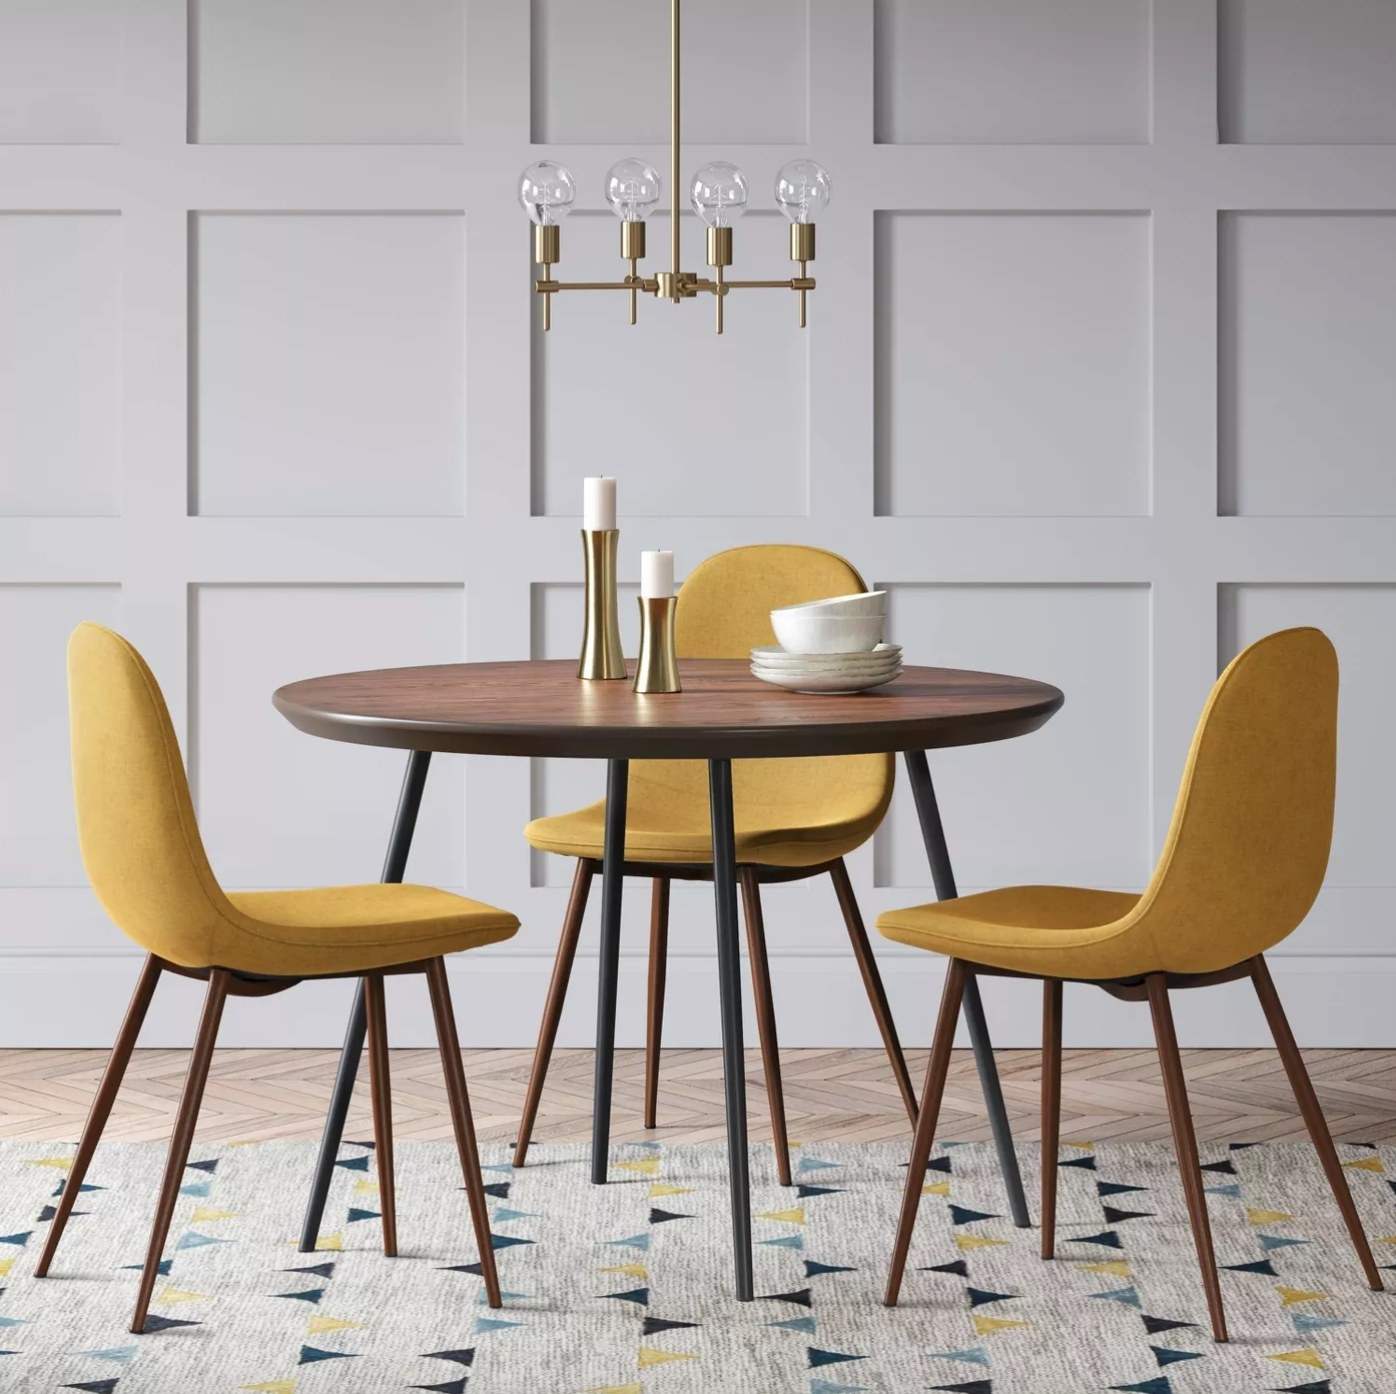 The two piece set of upholstered diing chairs in mustard with wood legs